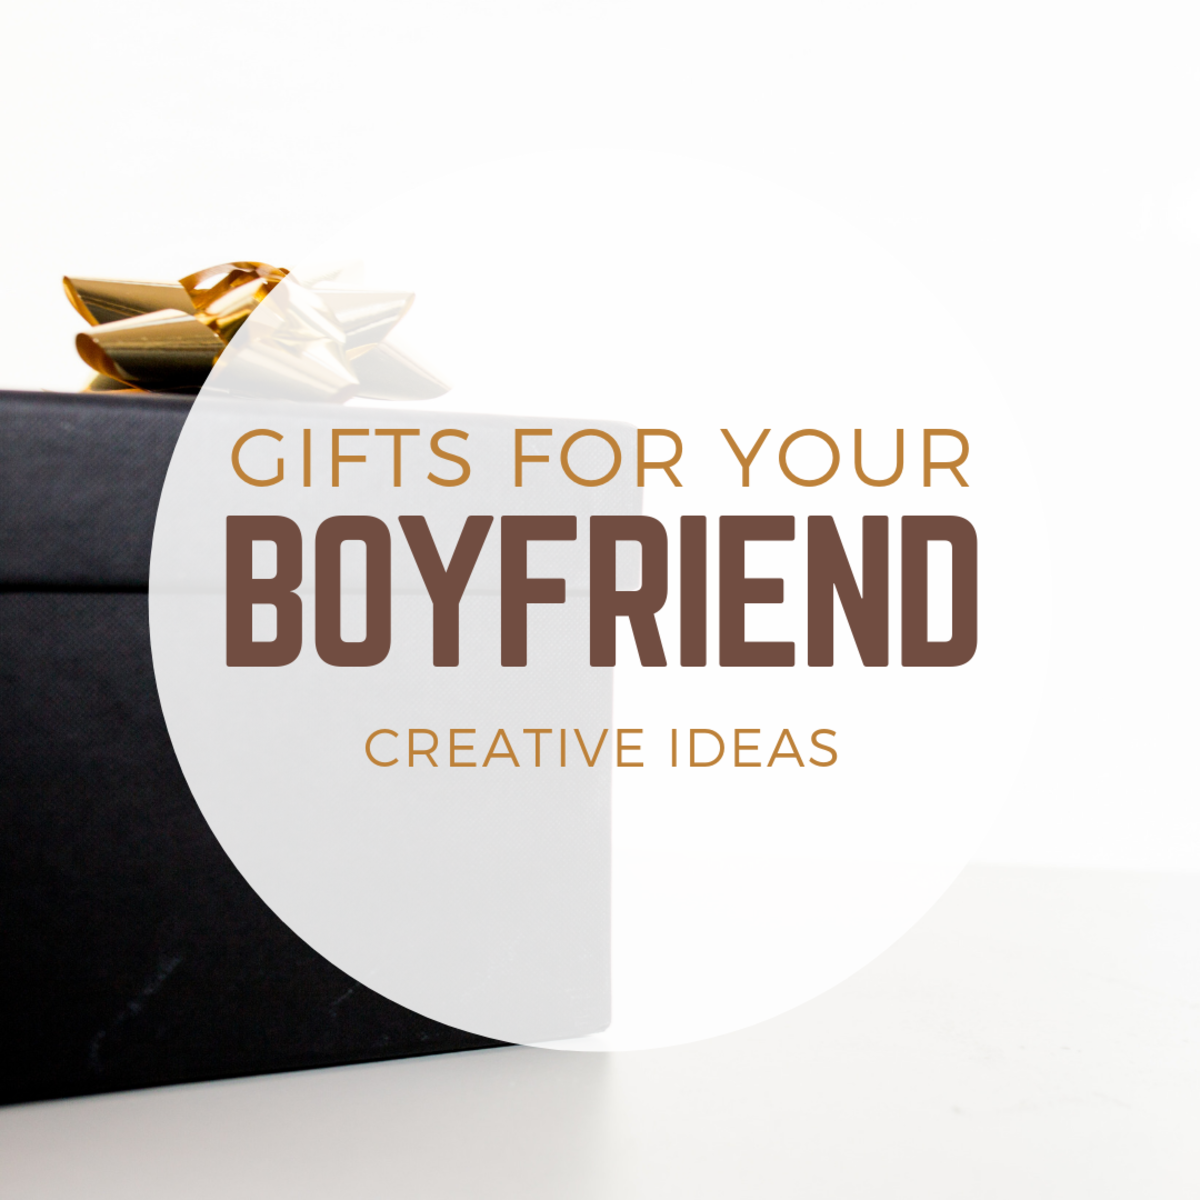 Gift Ideas for Your Boyfriend